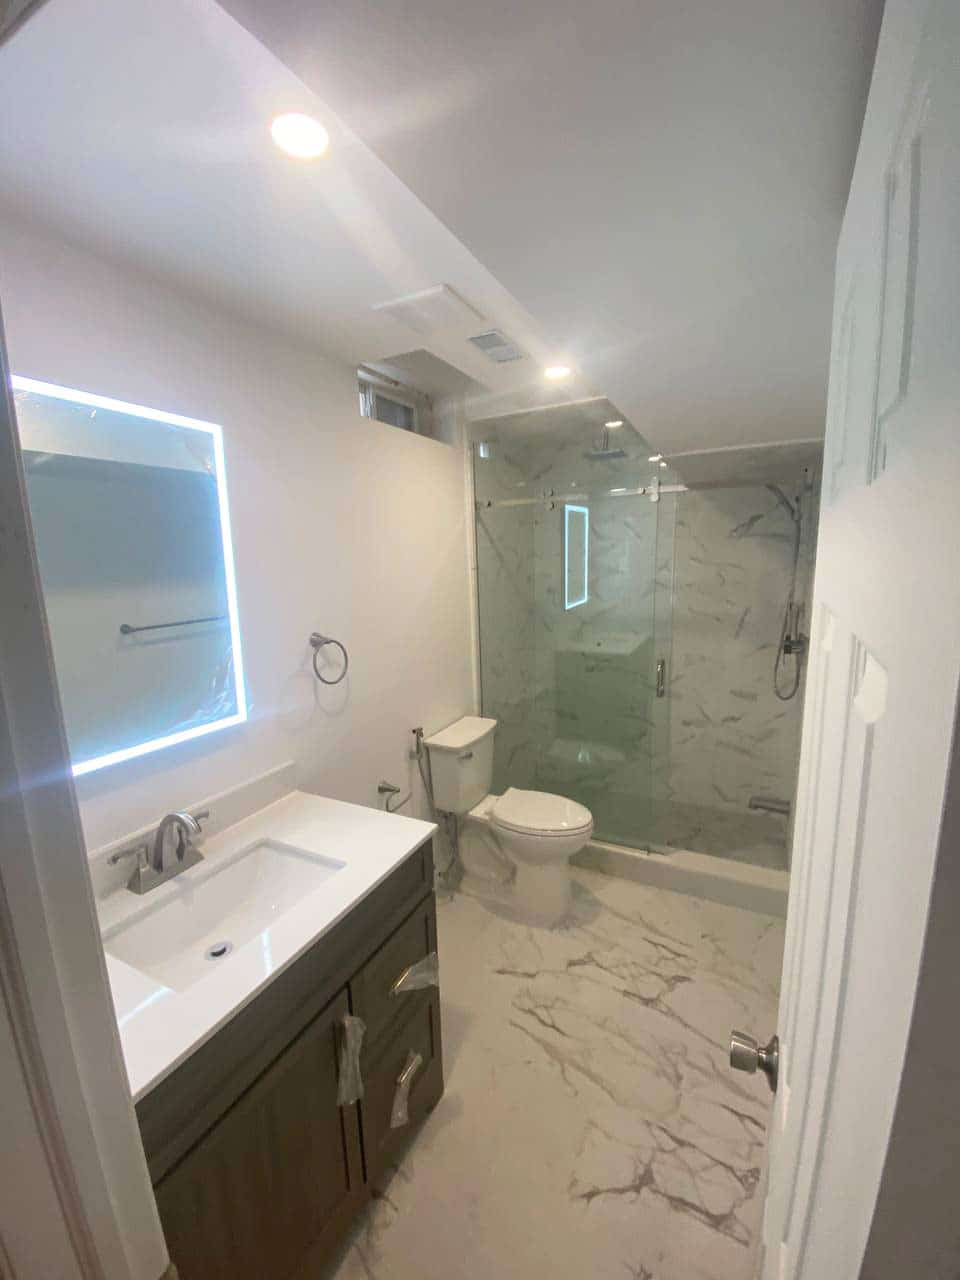 bathroom renovation with Marble tiles - Construction company in Toronto tmdc group